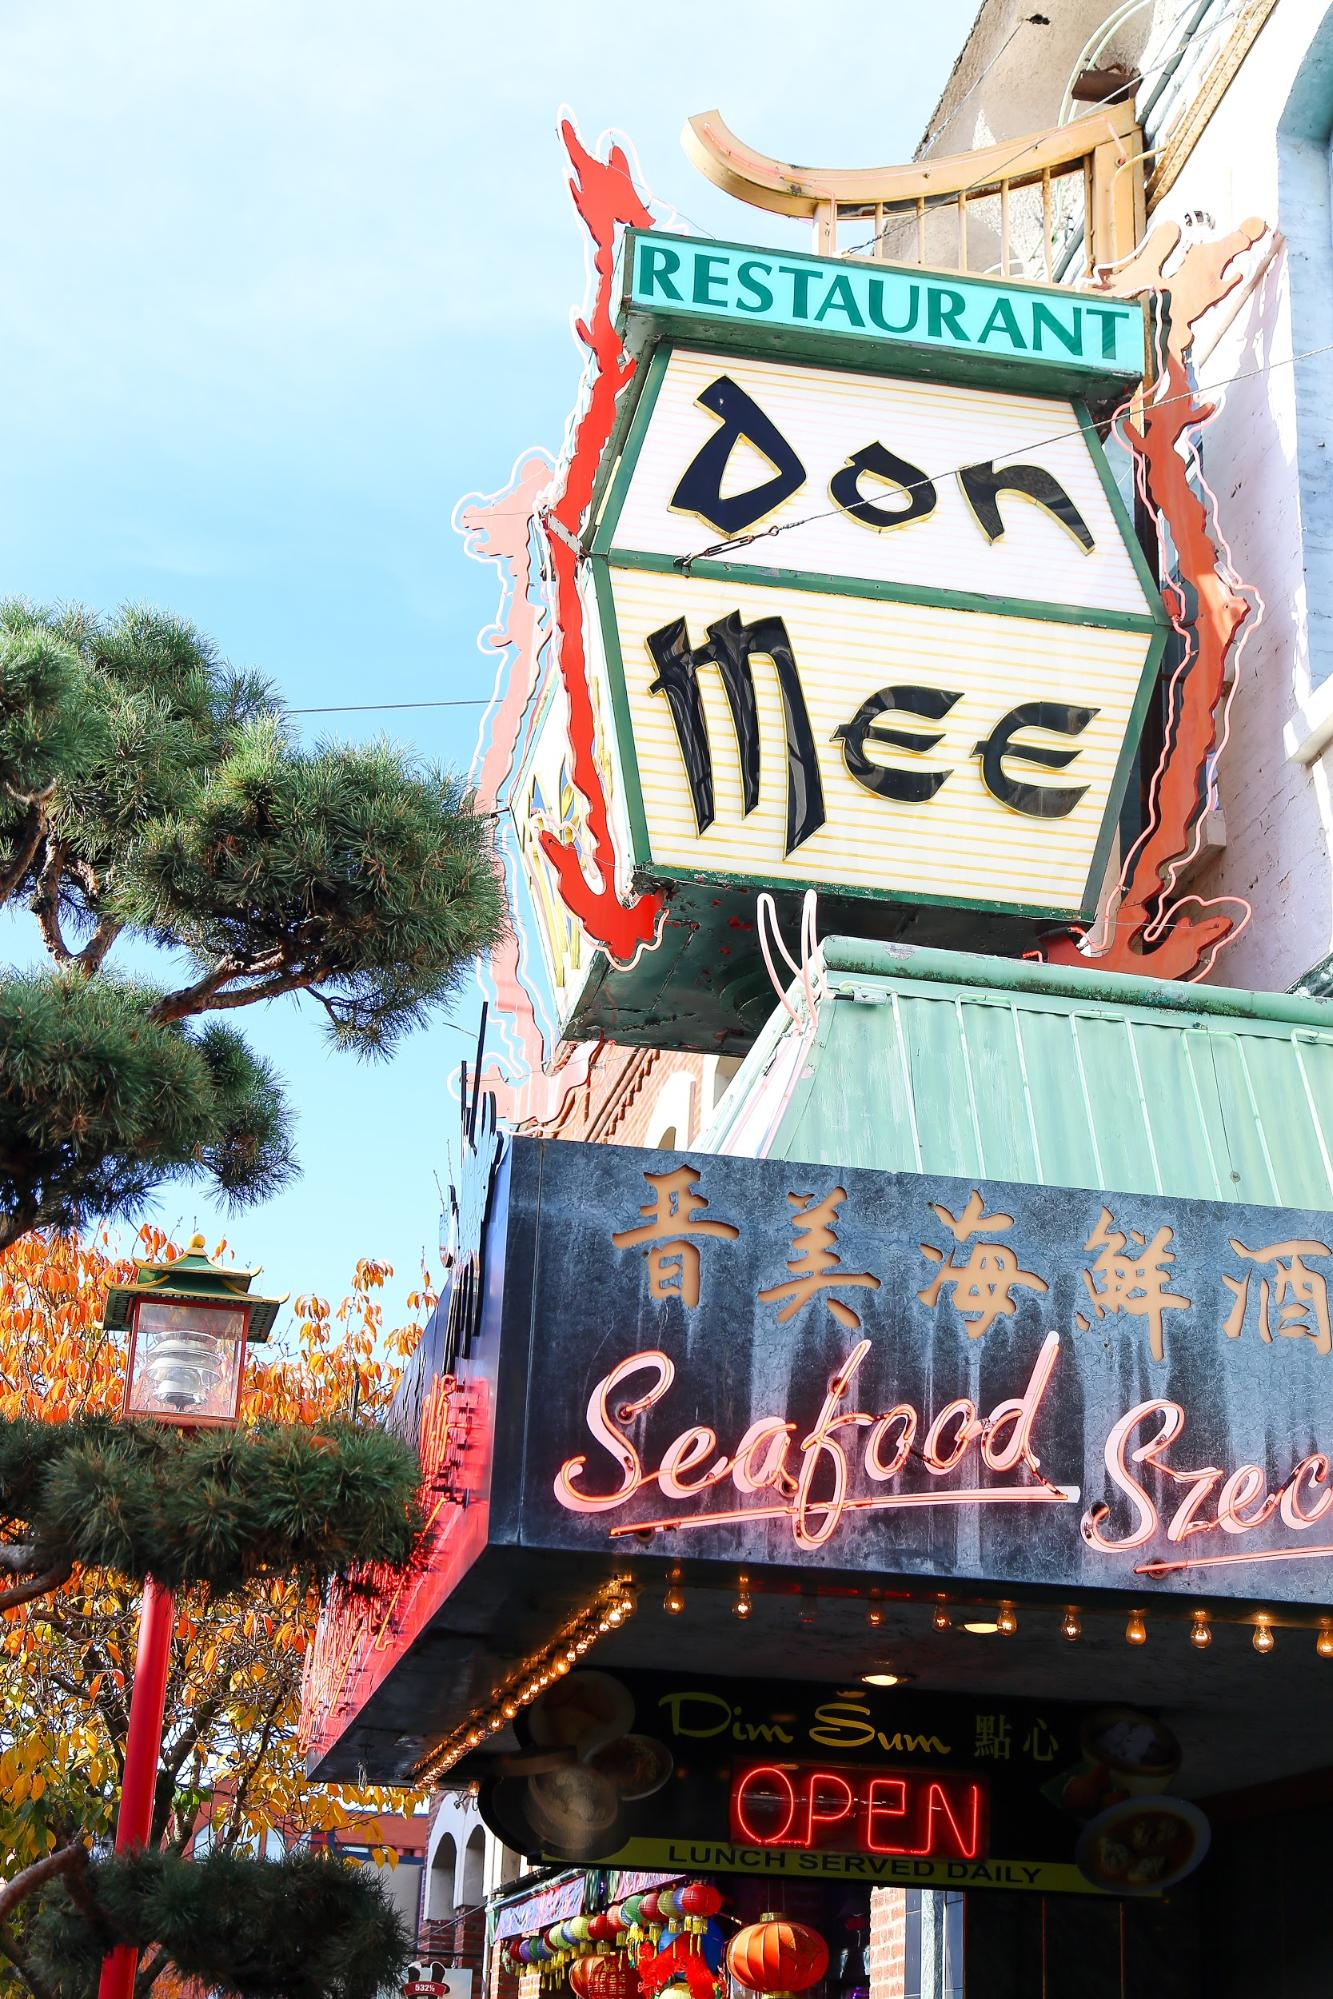 An ornate restaurant named Don Mee.